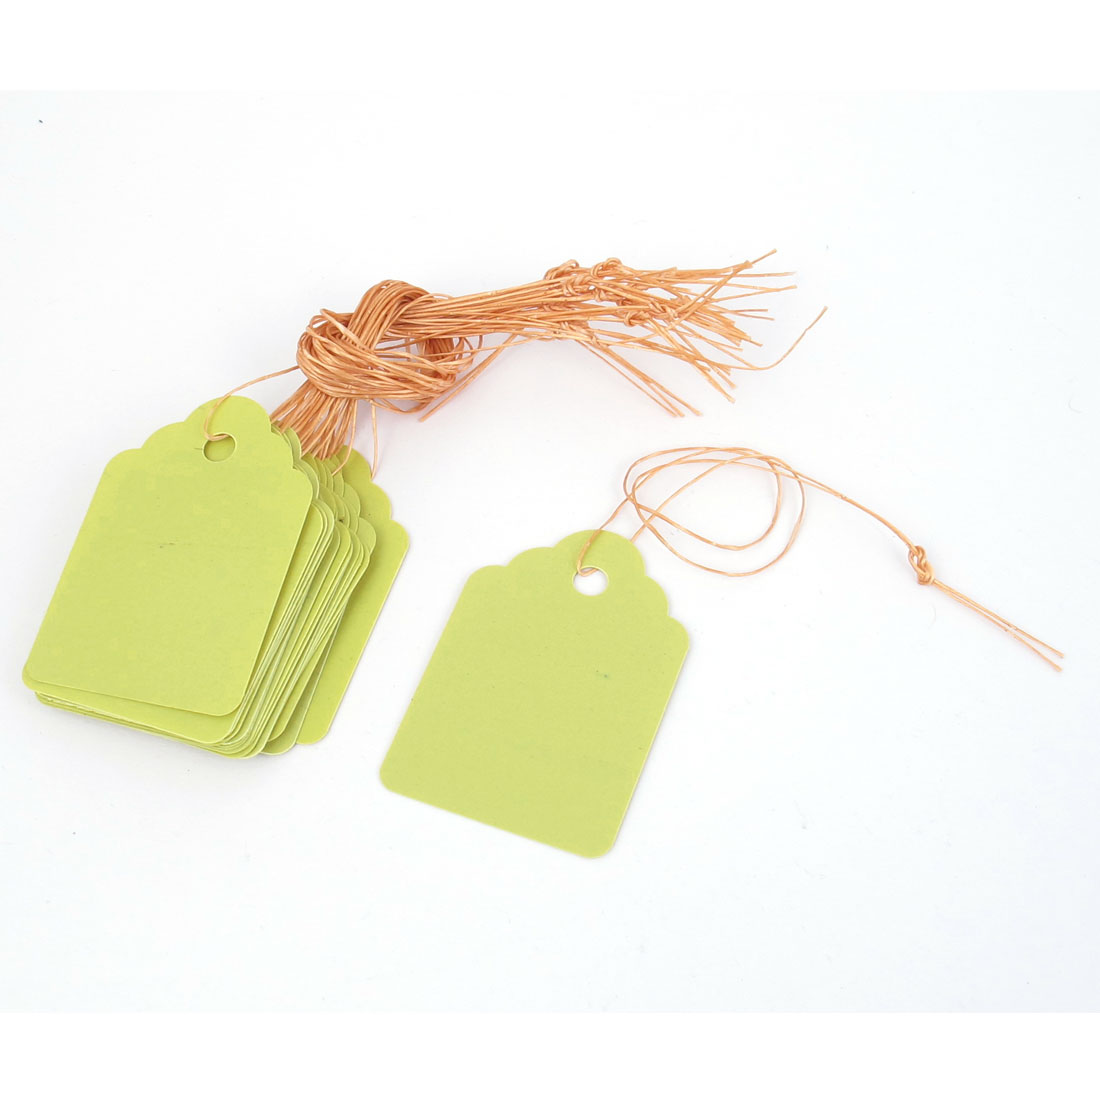 45mmx30mm Plastic Nursery Garden Plant Seed Hanging Tag Label Marker Yellow 20pcs